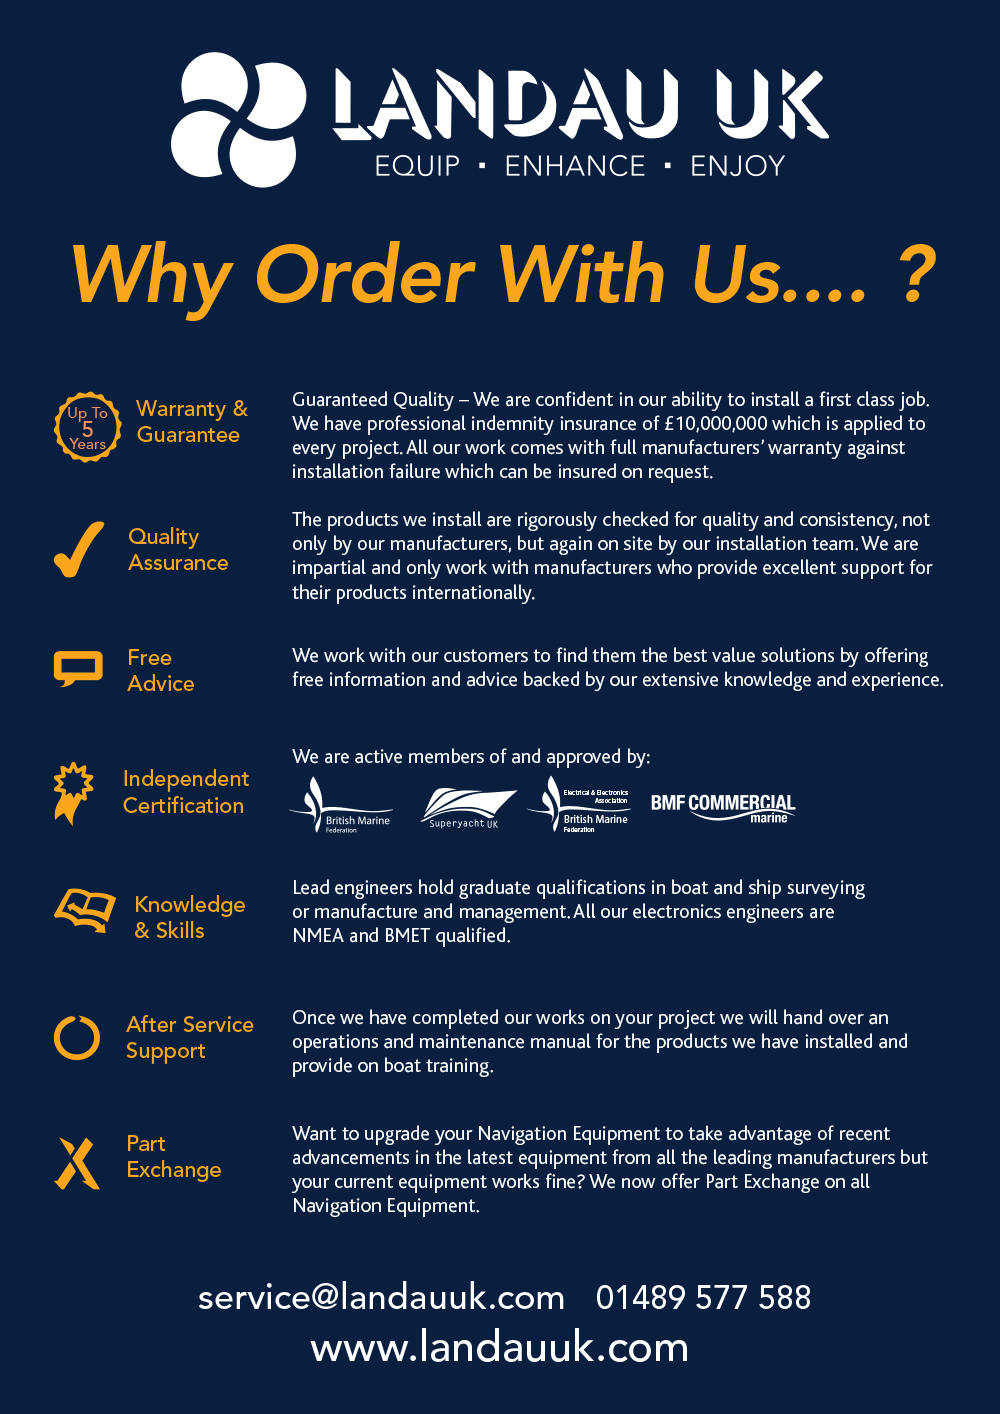 Why order with us?